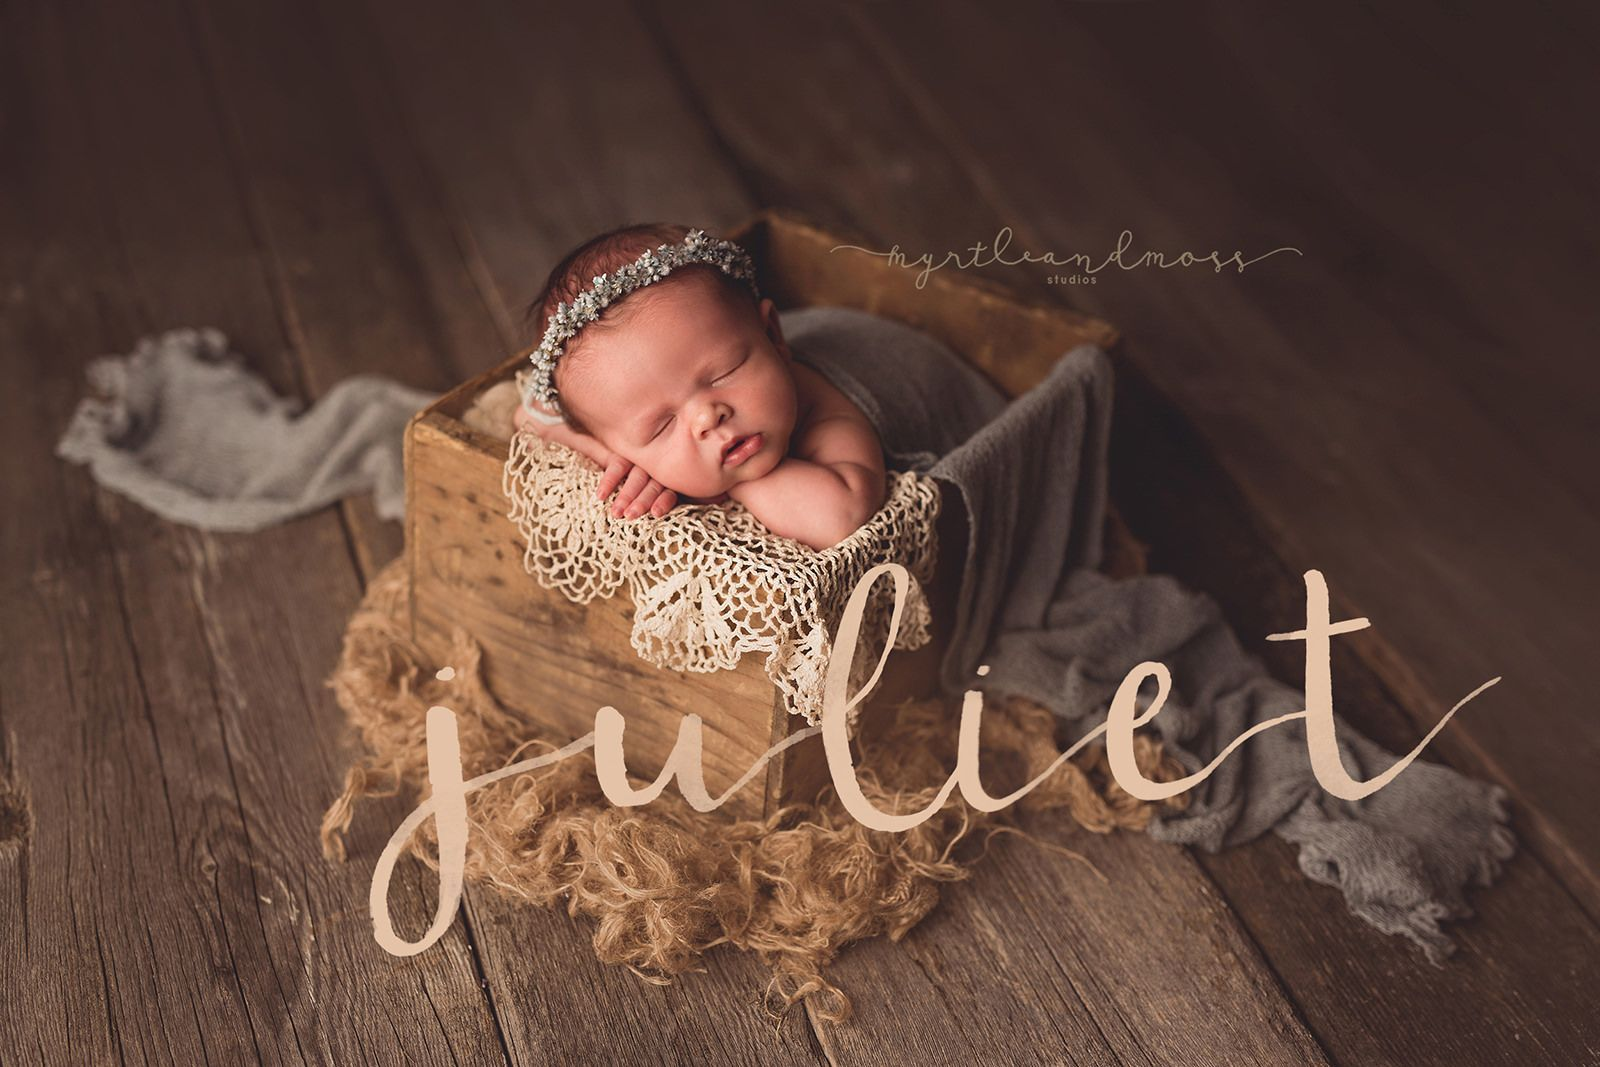 Myrtle and moss photography victoria newborn and maternity photography best baby names